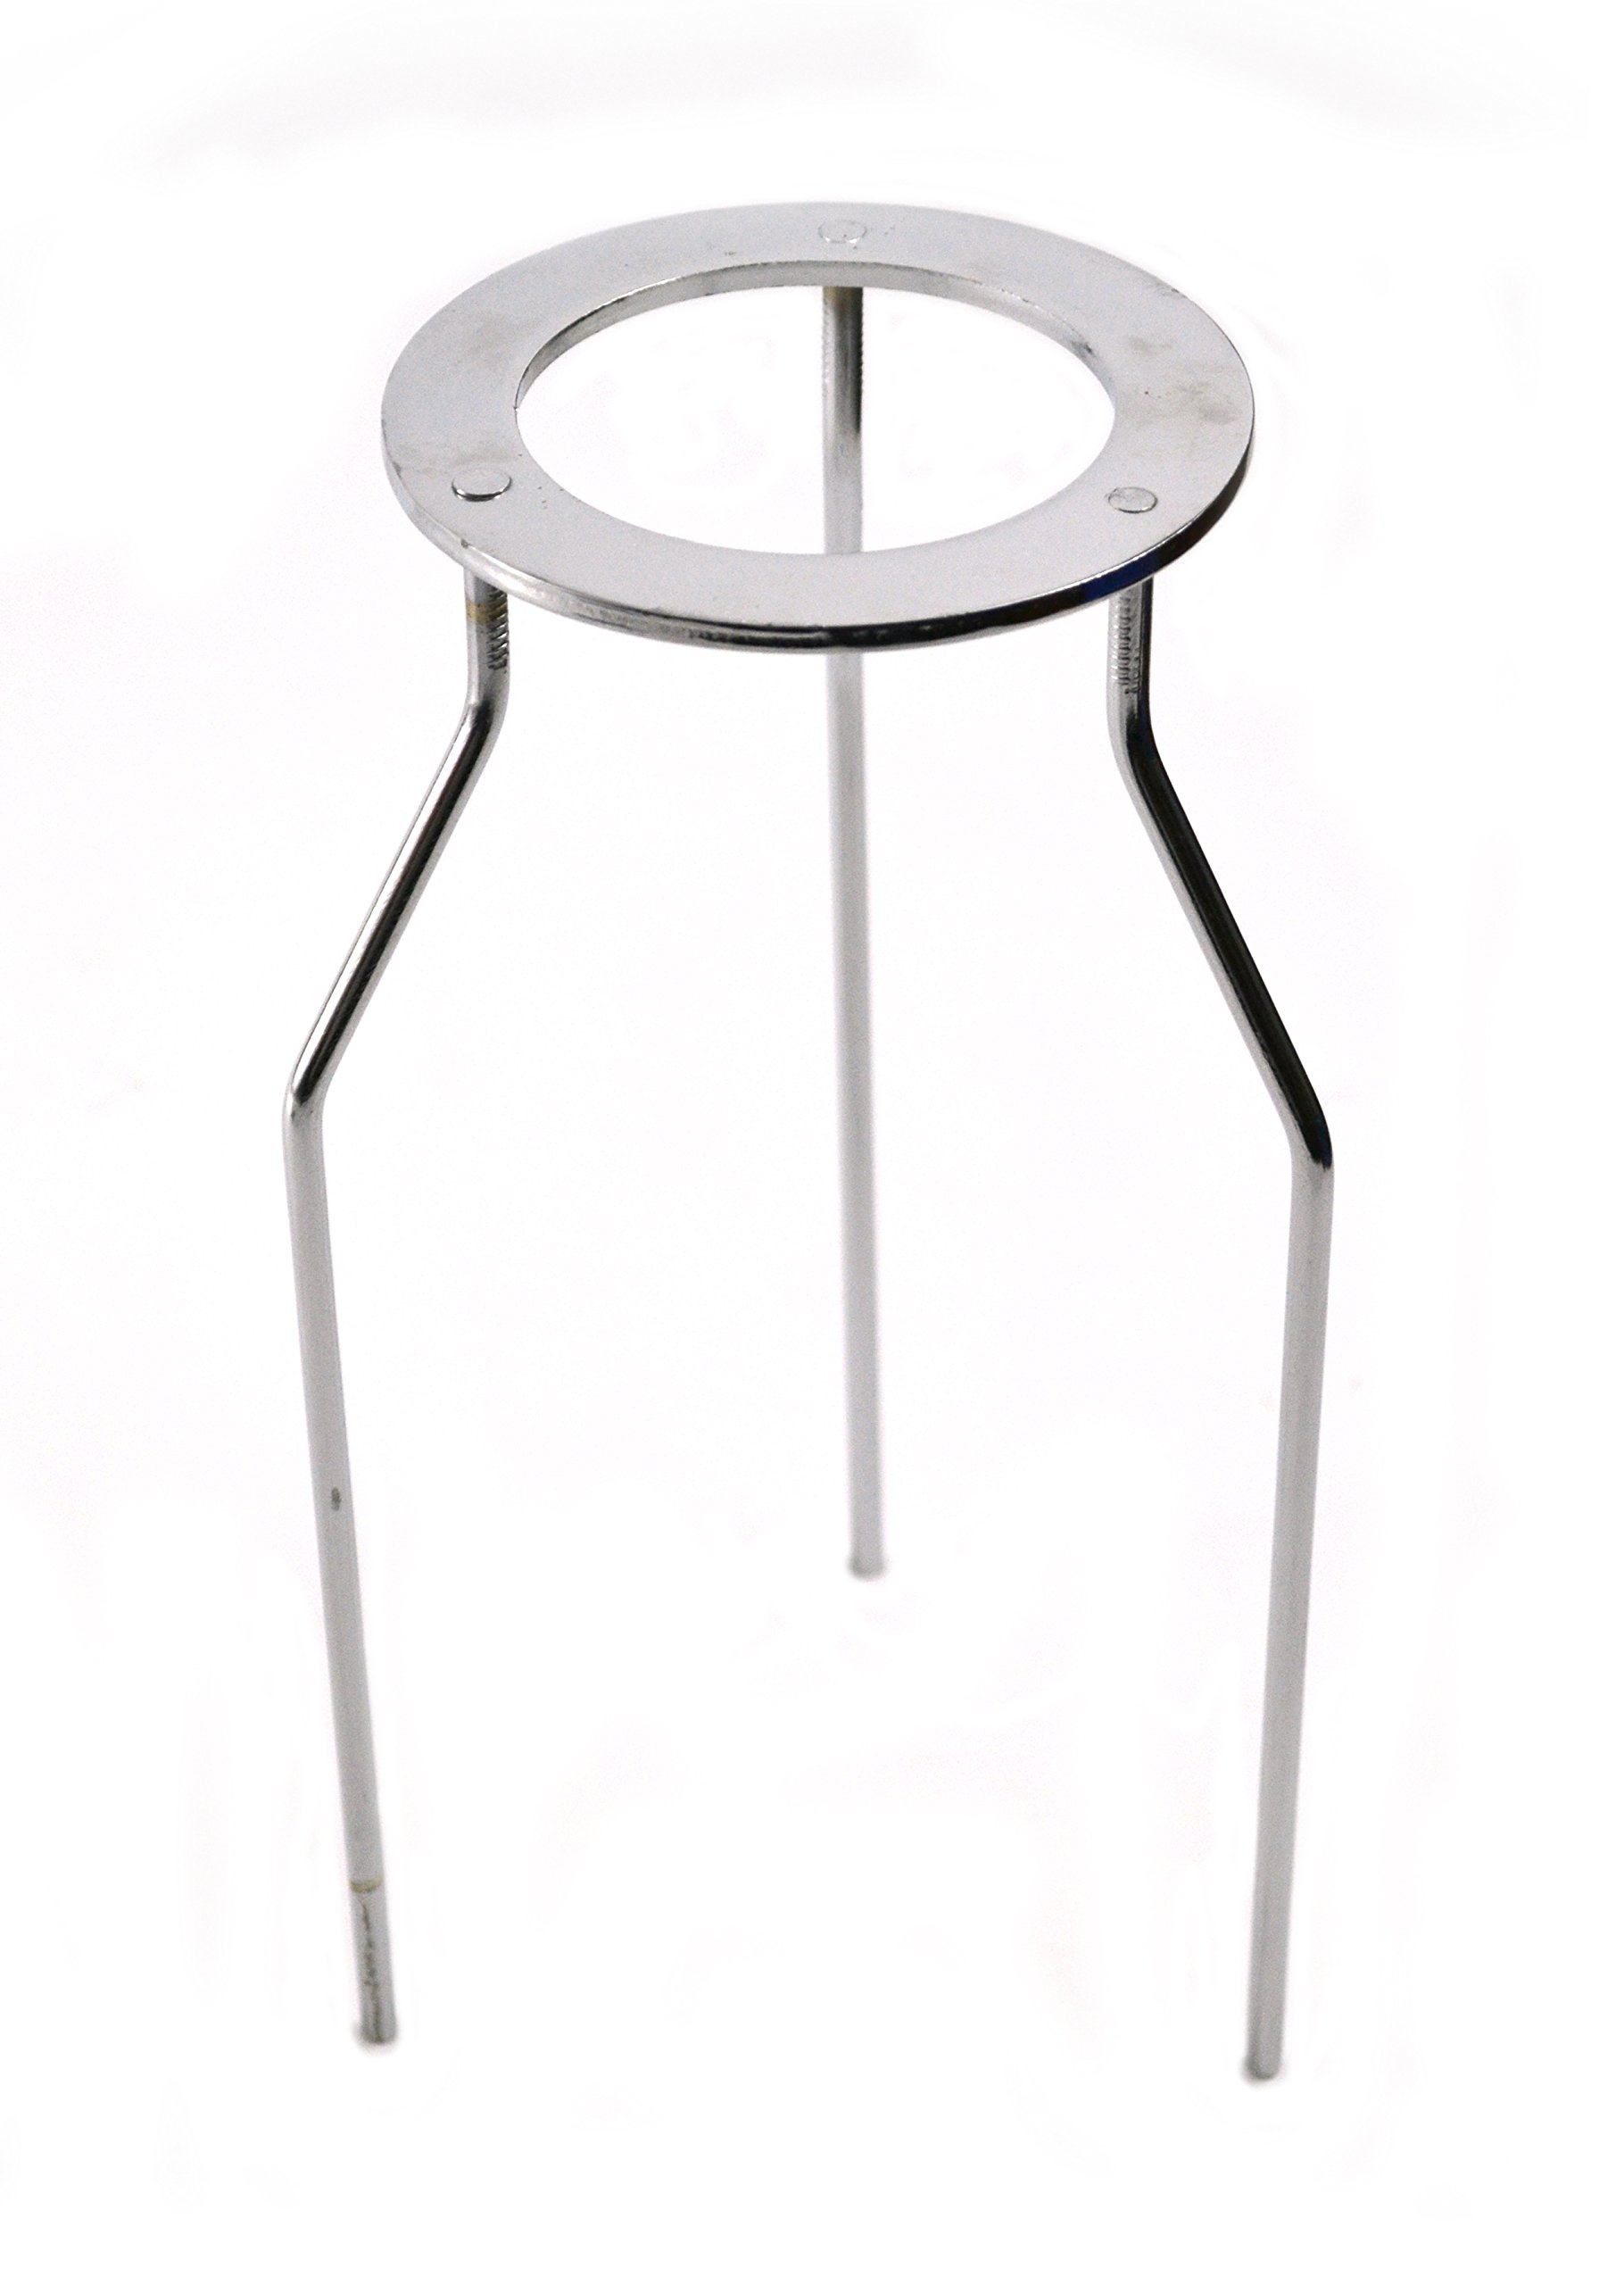 Eisco Labs Stainless Steel Circular Tripod Stand - 8.75'' Tall by EISCO